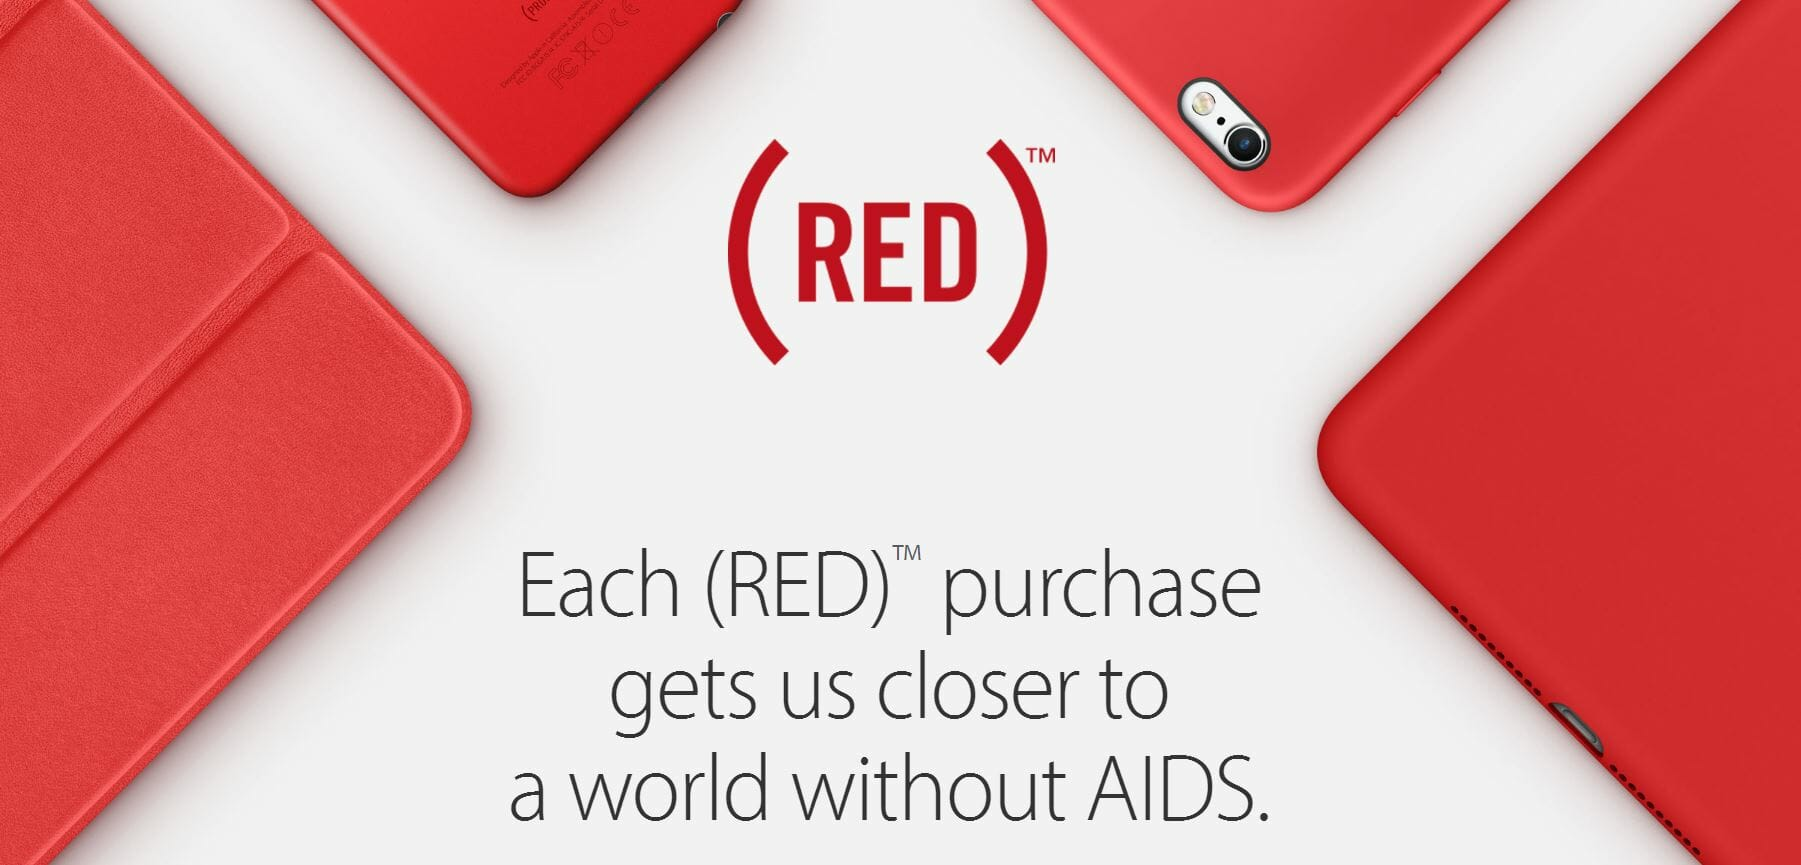 Apple introduces new PRODUCT(RED) products, limited edition in-app game items for World AIDS Day